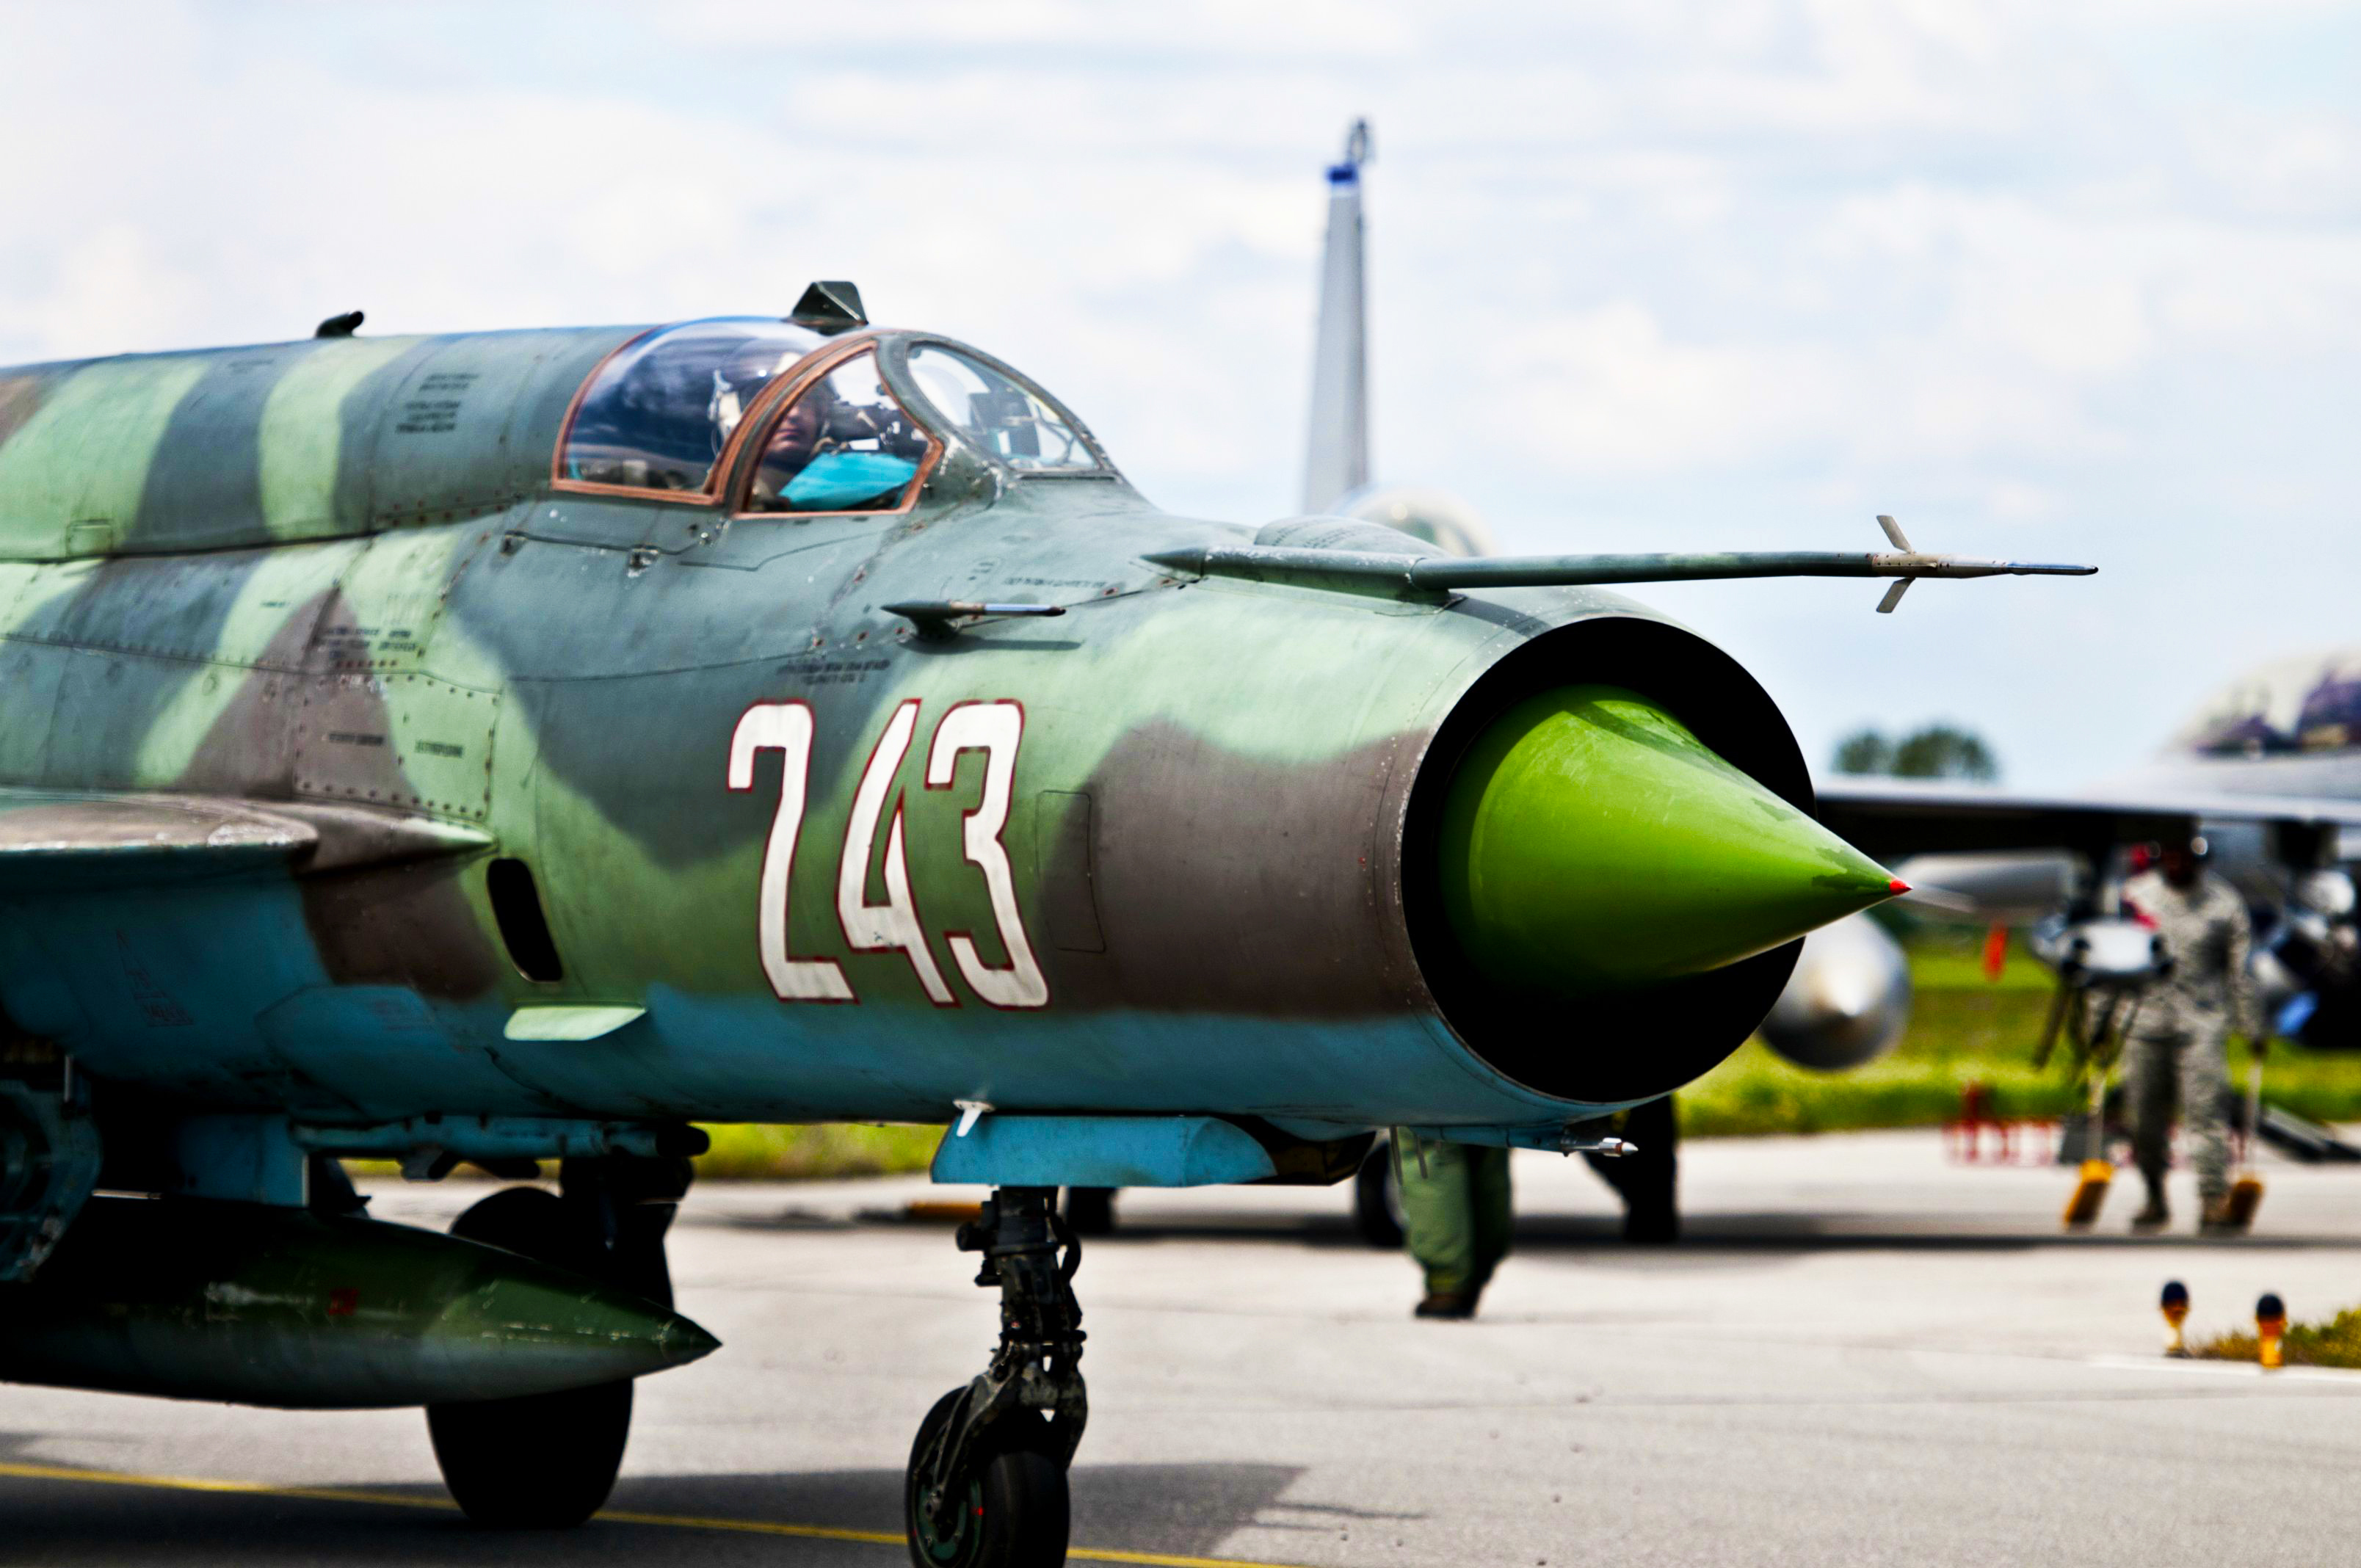 mig_21_fishbed_multipurpose_fighter_aircraft_mikoyan_98779_3216x2136